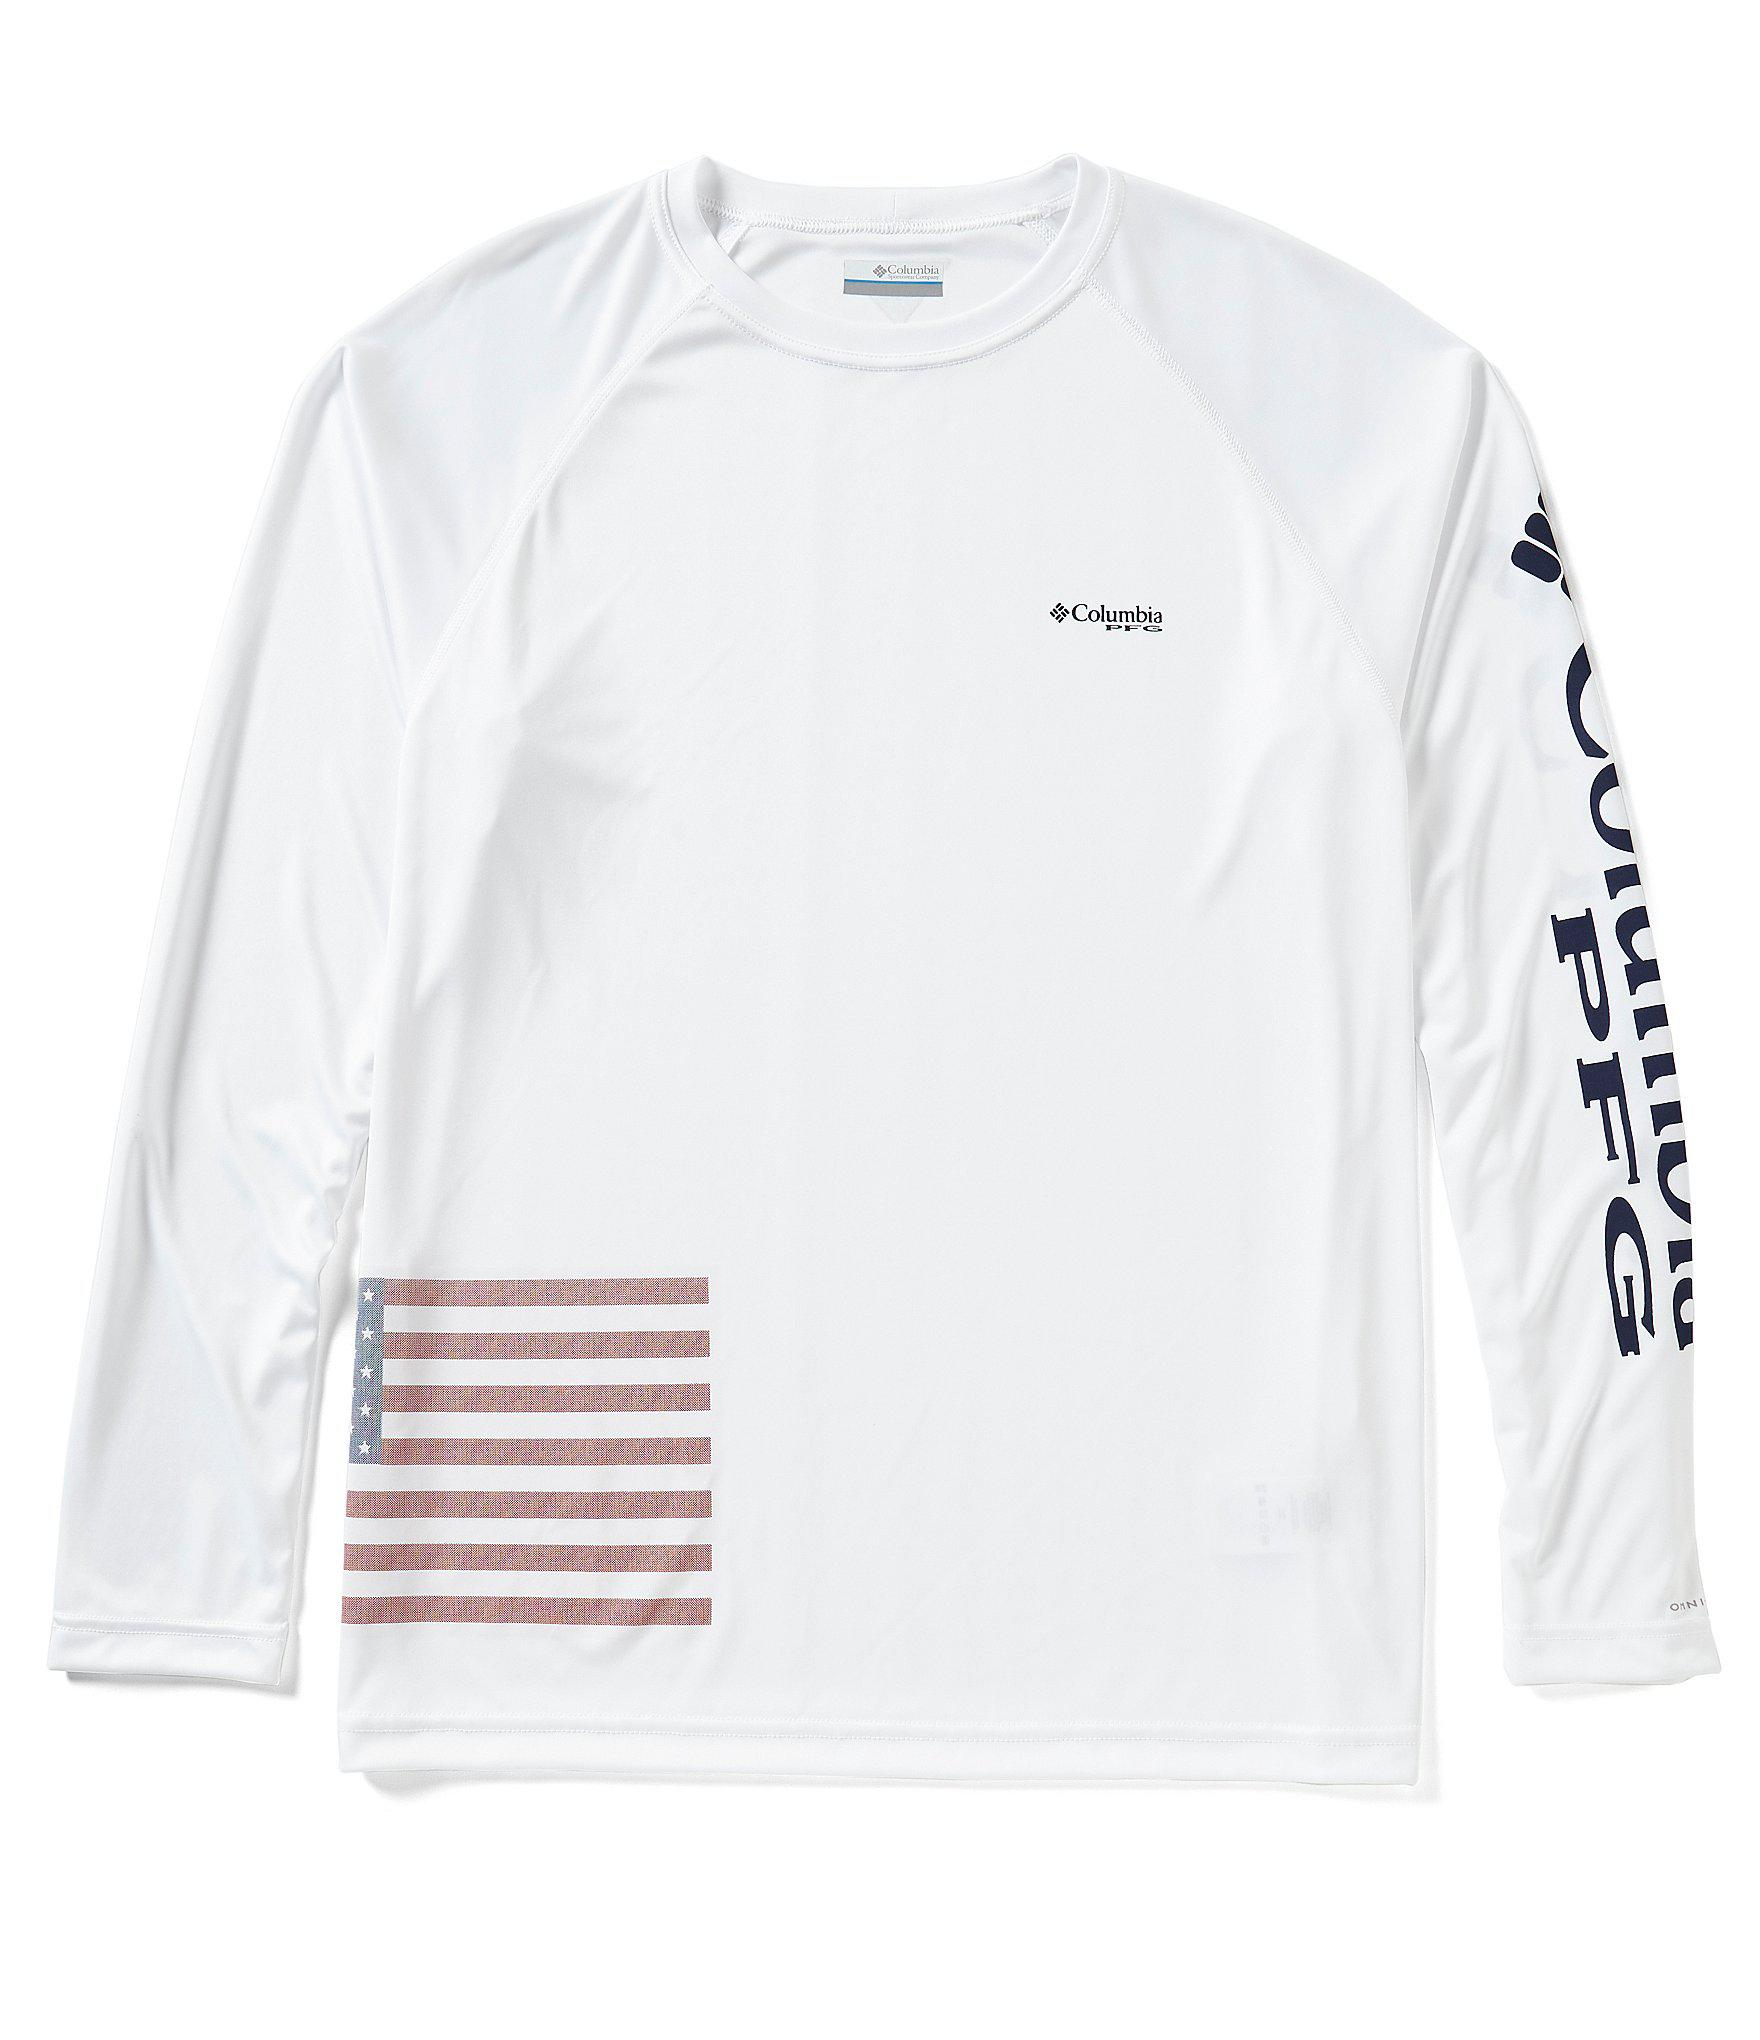 d4e6c85ce3b Columbia Pfg Fish Series Terminal Tackle Long-sleeve Tee in White ...